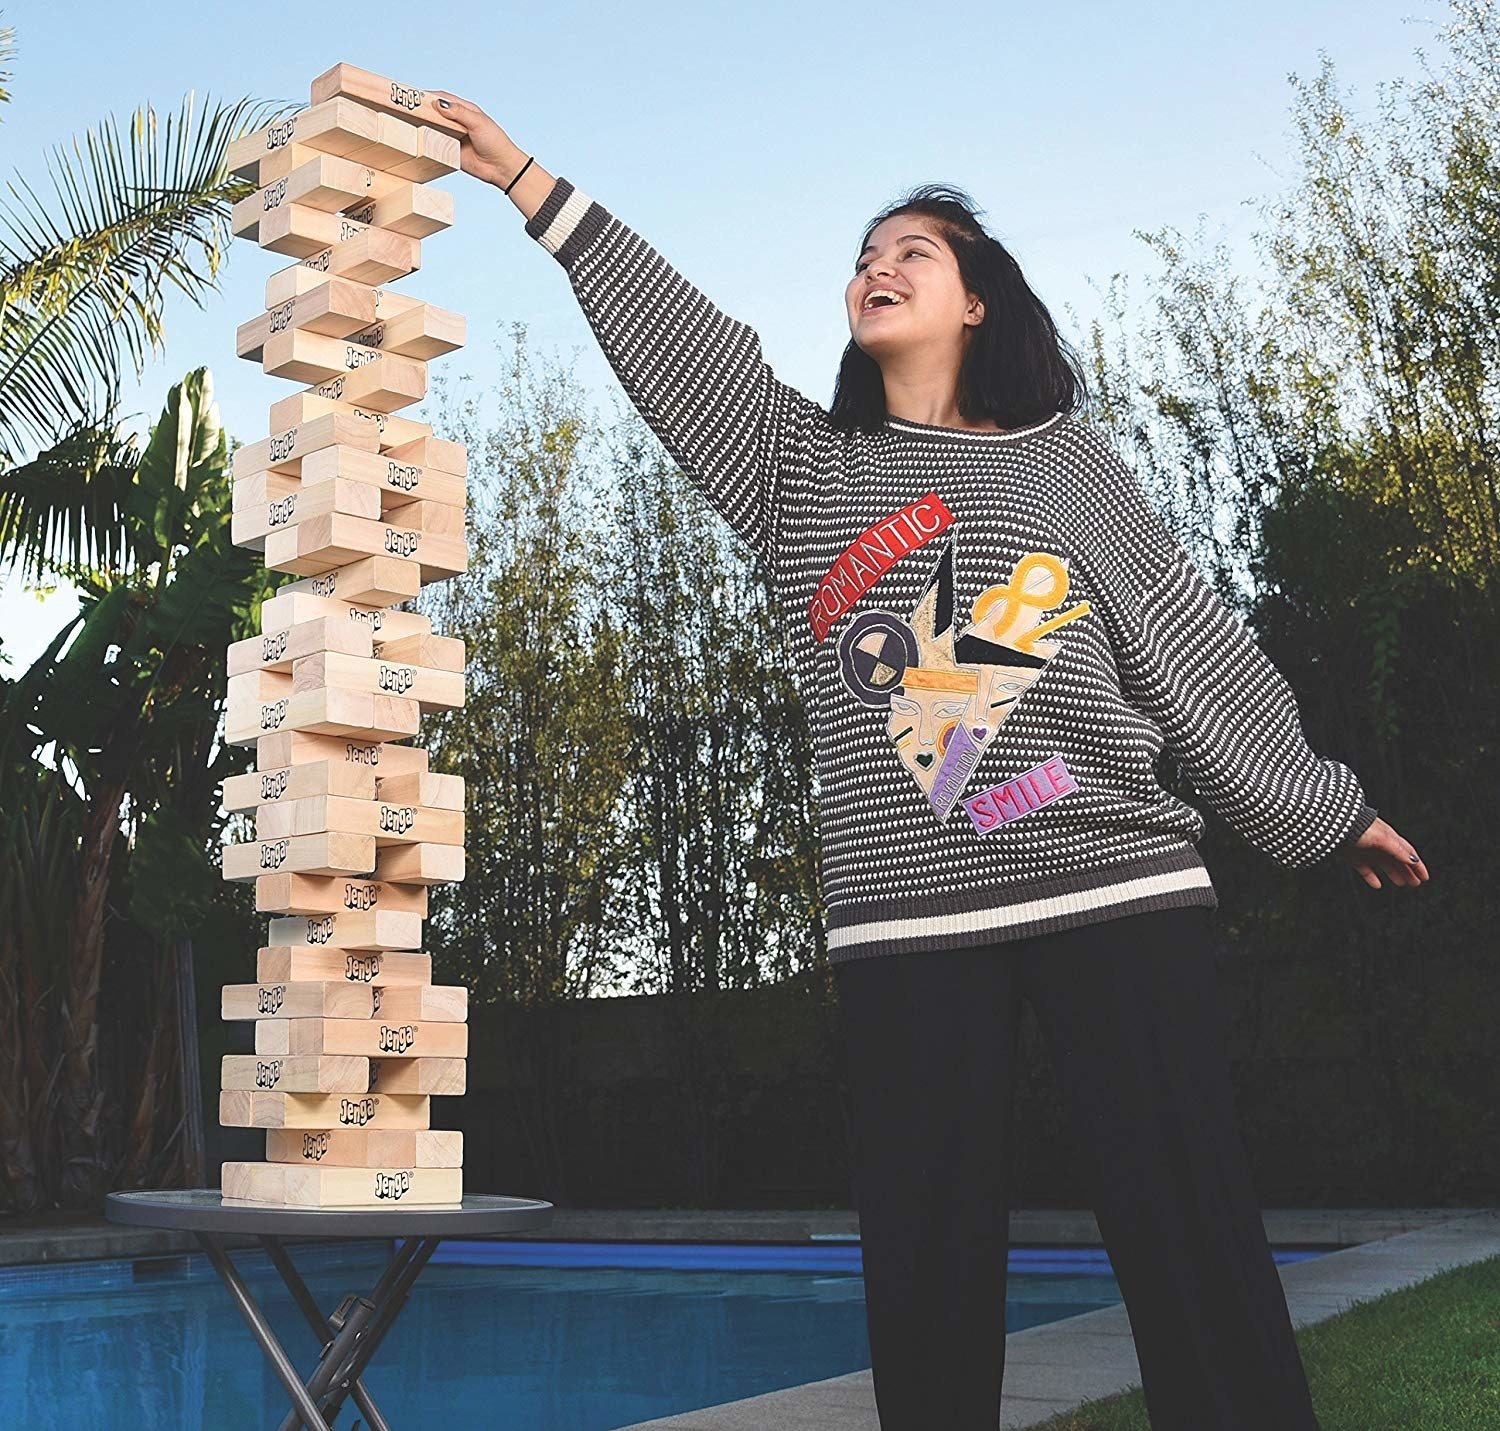 A person playing Jenga that has been put on a small table. With the help of the table, game towers over her head